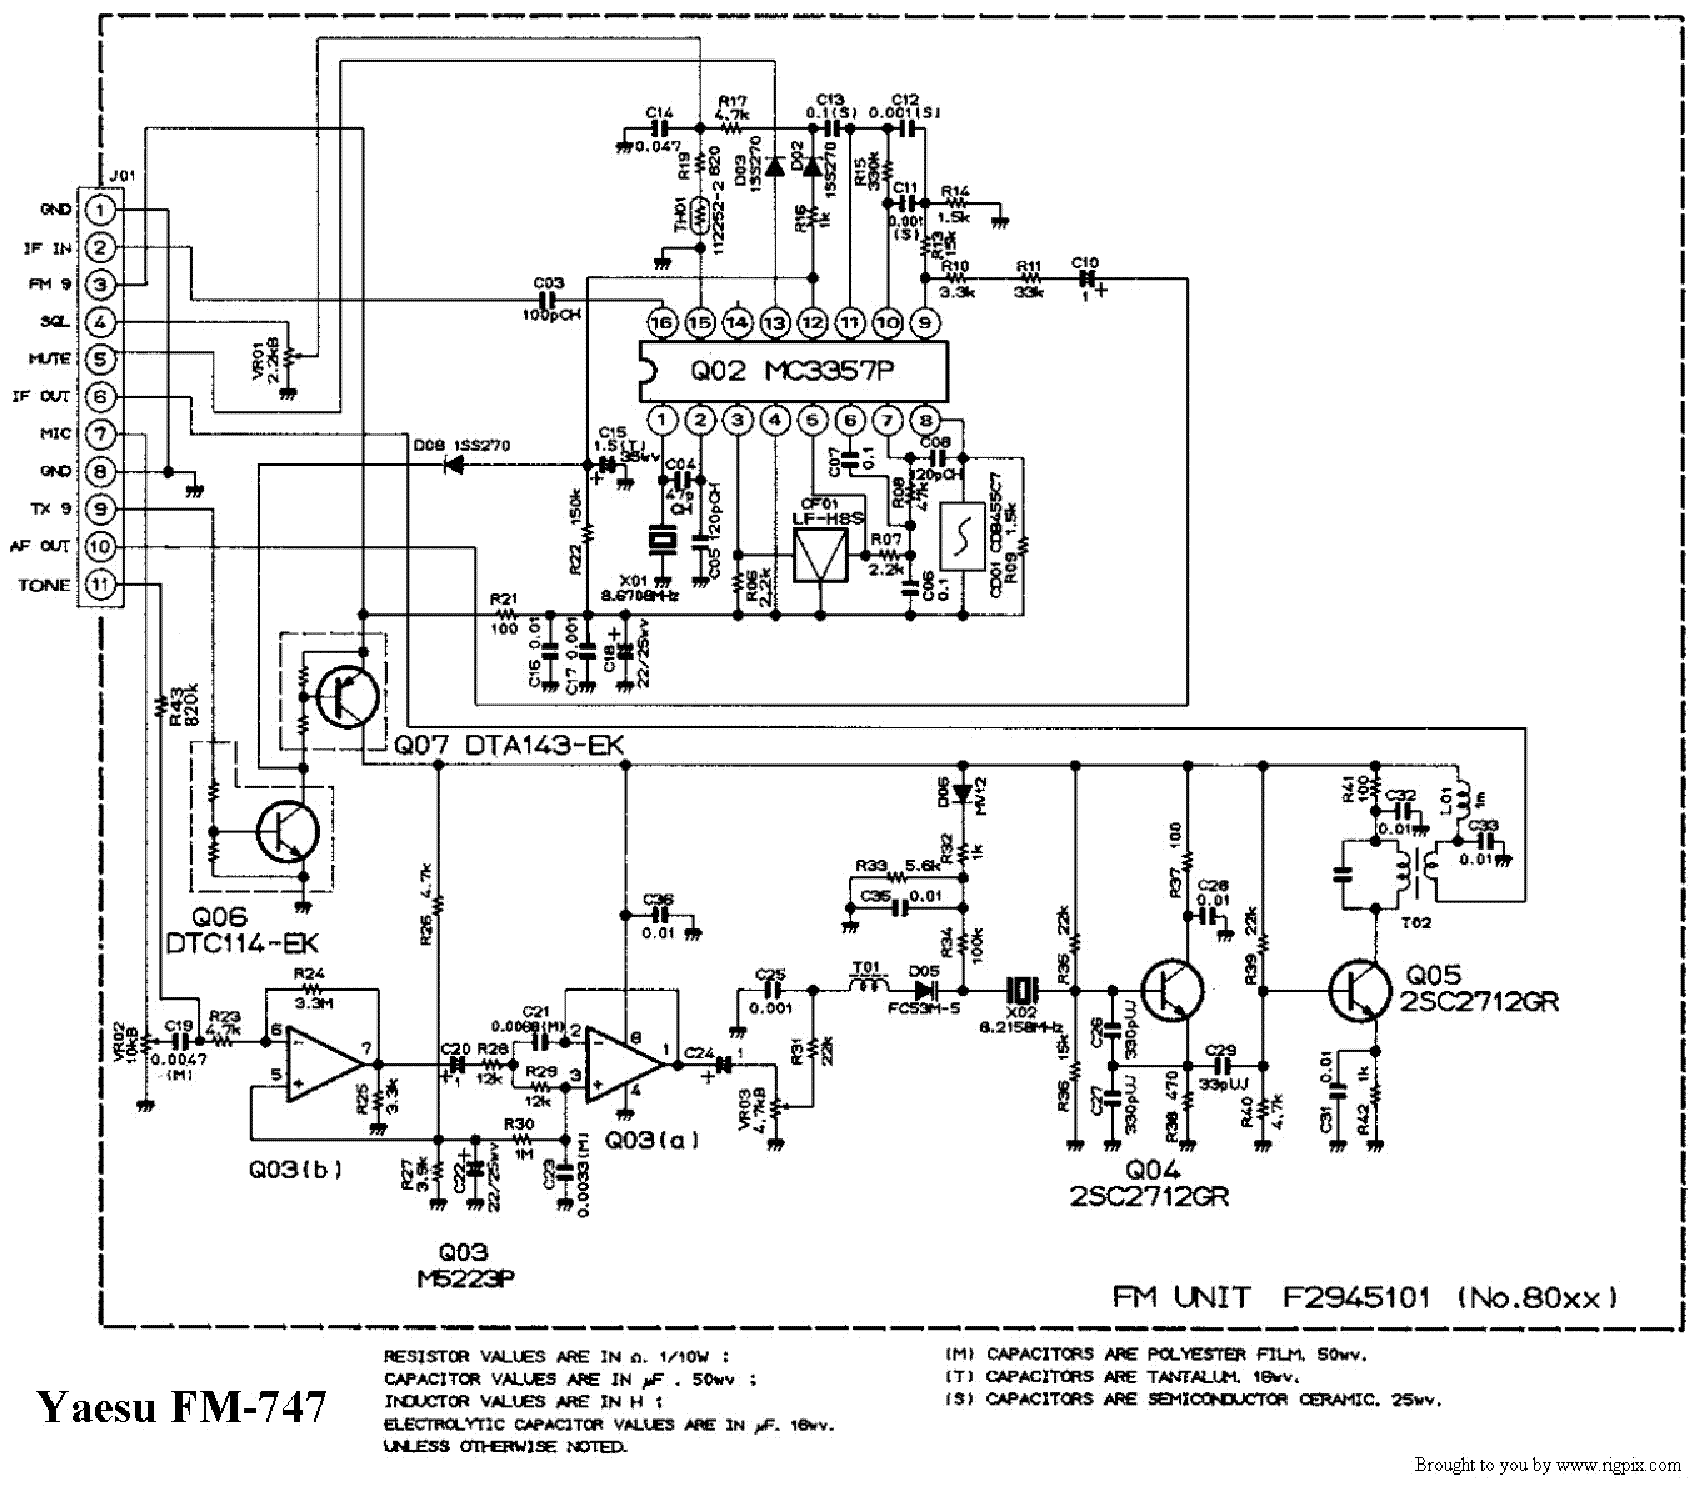 Yaesu Fm747 Sch Service Manual Download Schematics